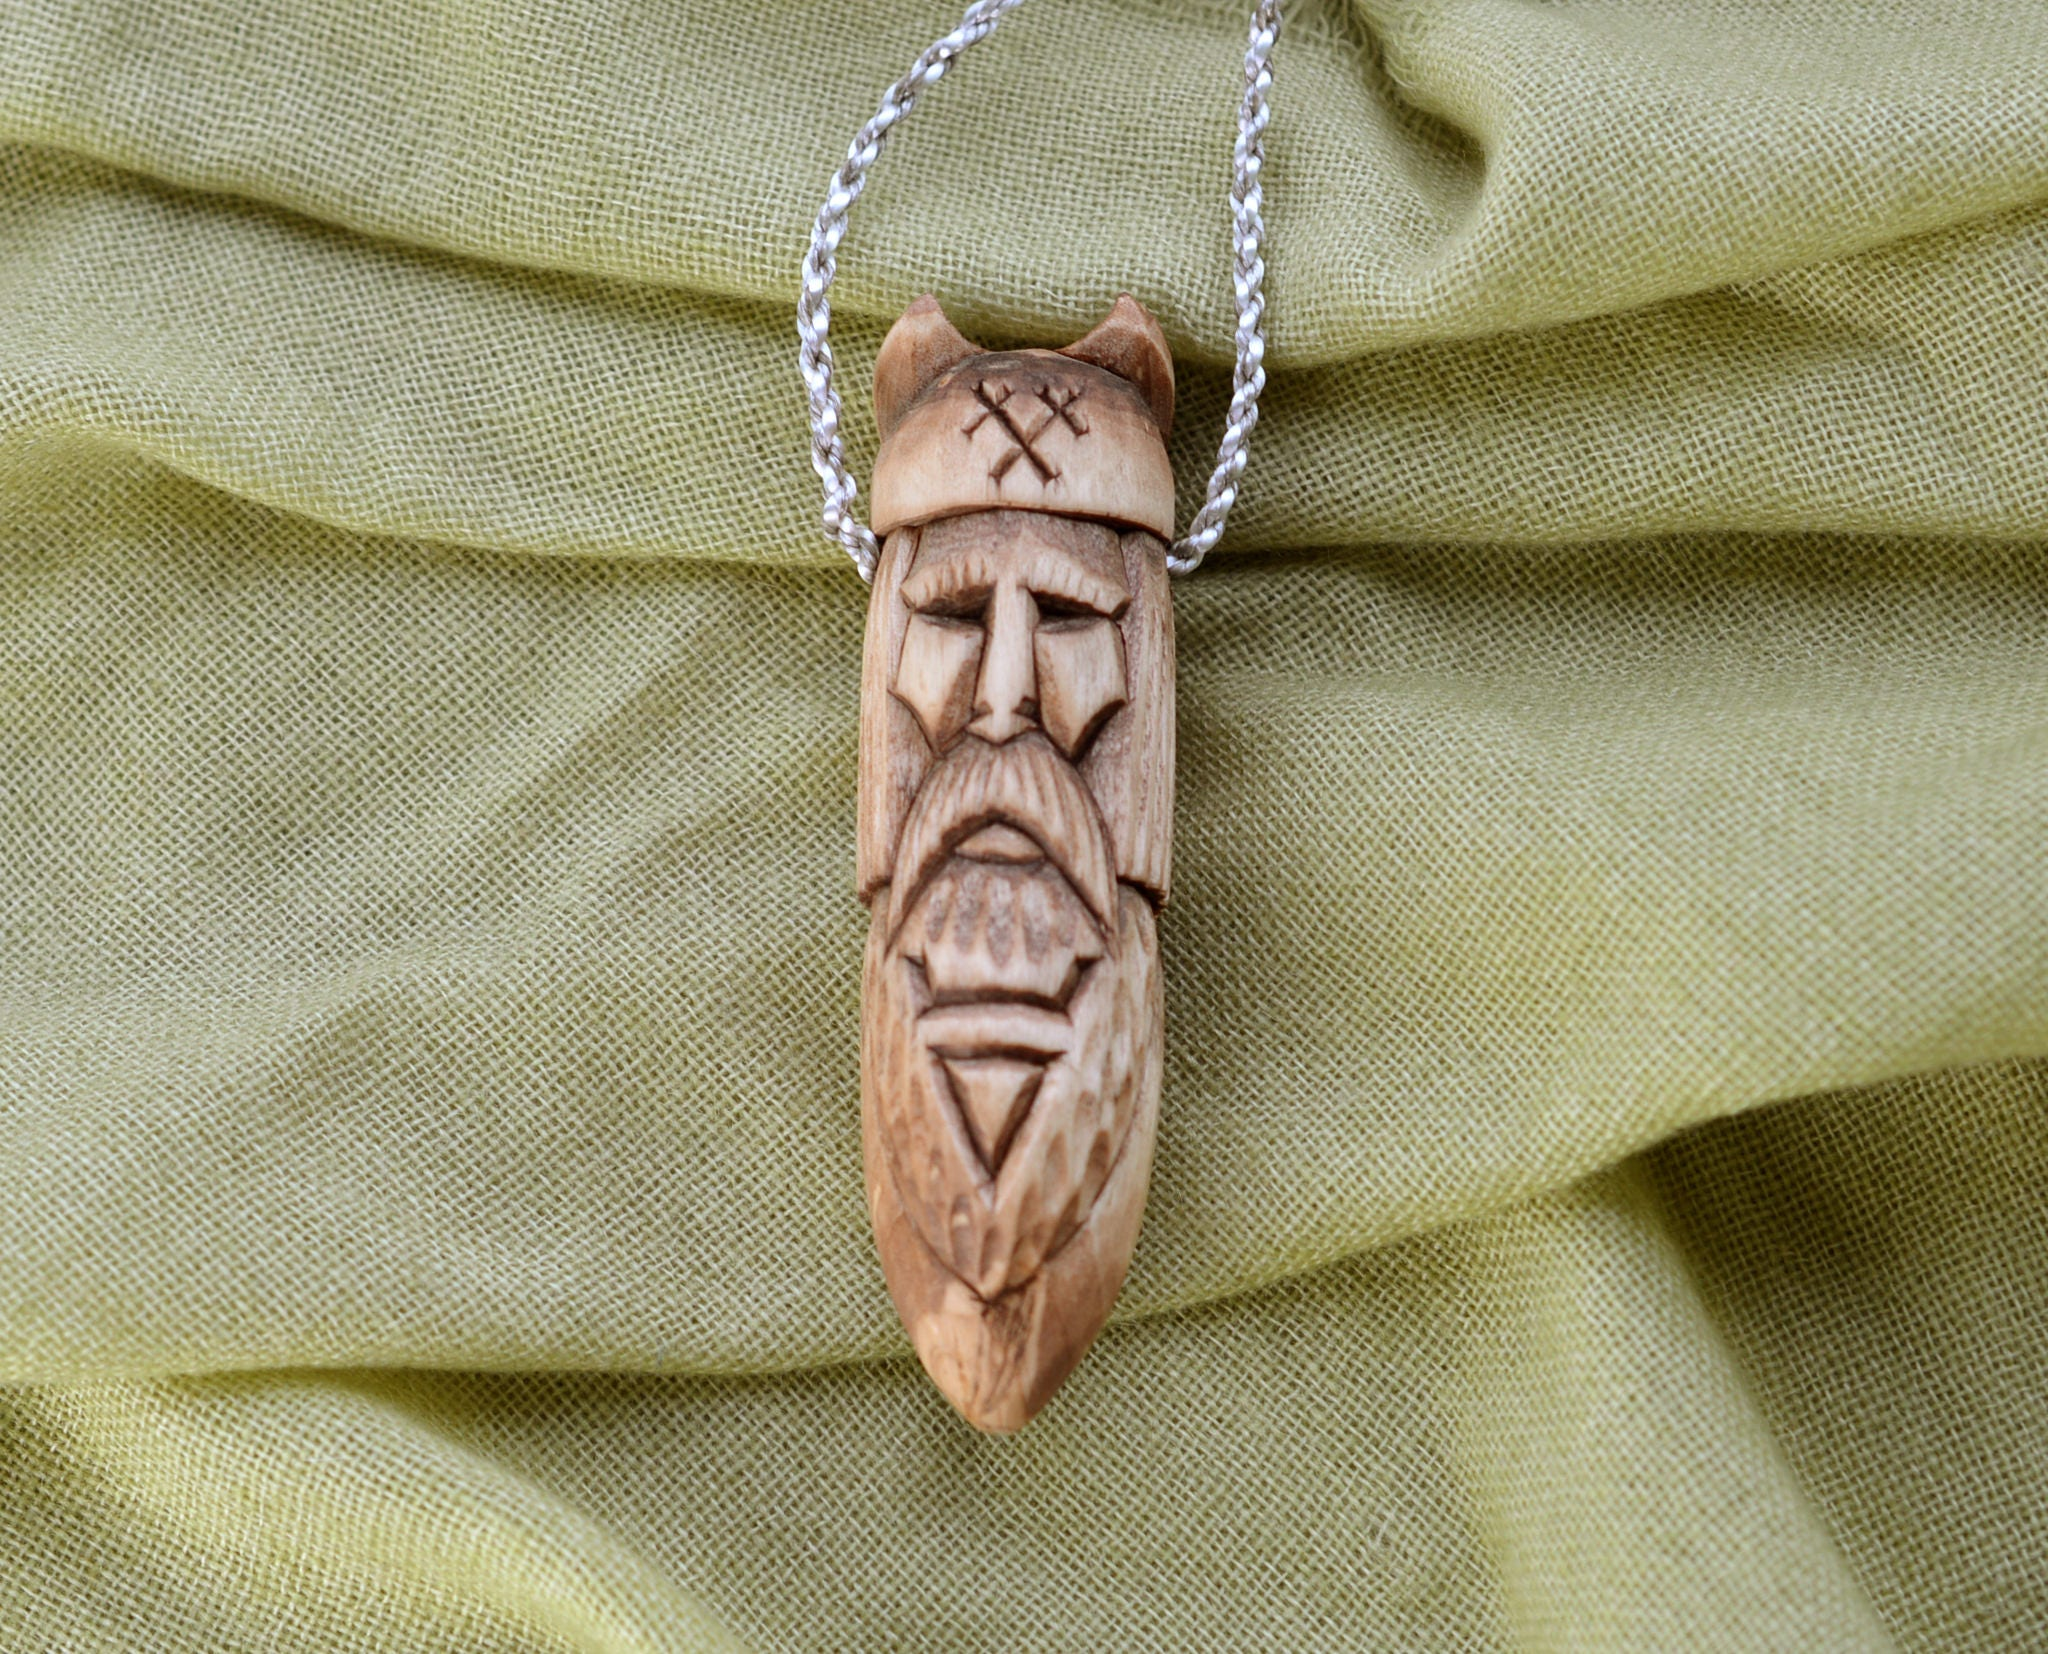 spirit necklace pinterest pin carving woodcarving luck good wood